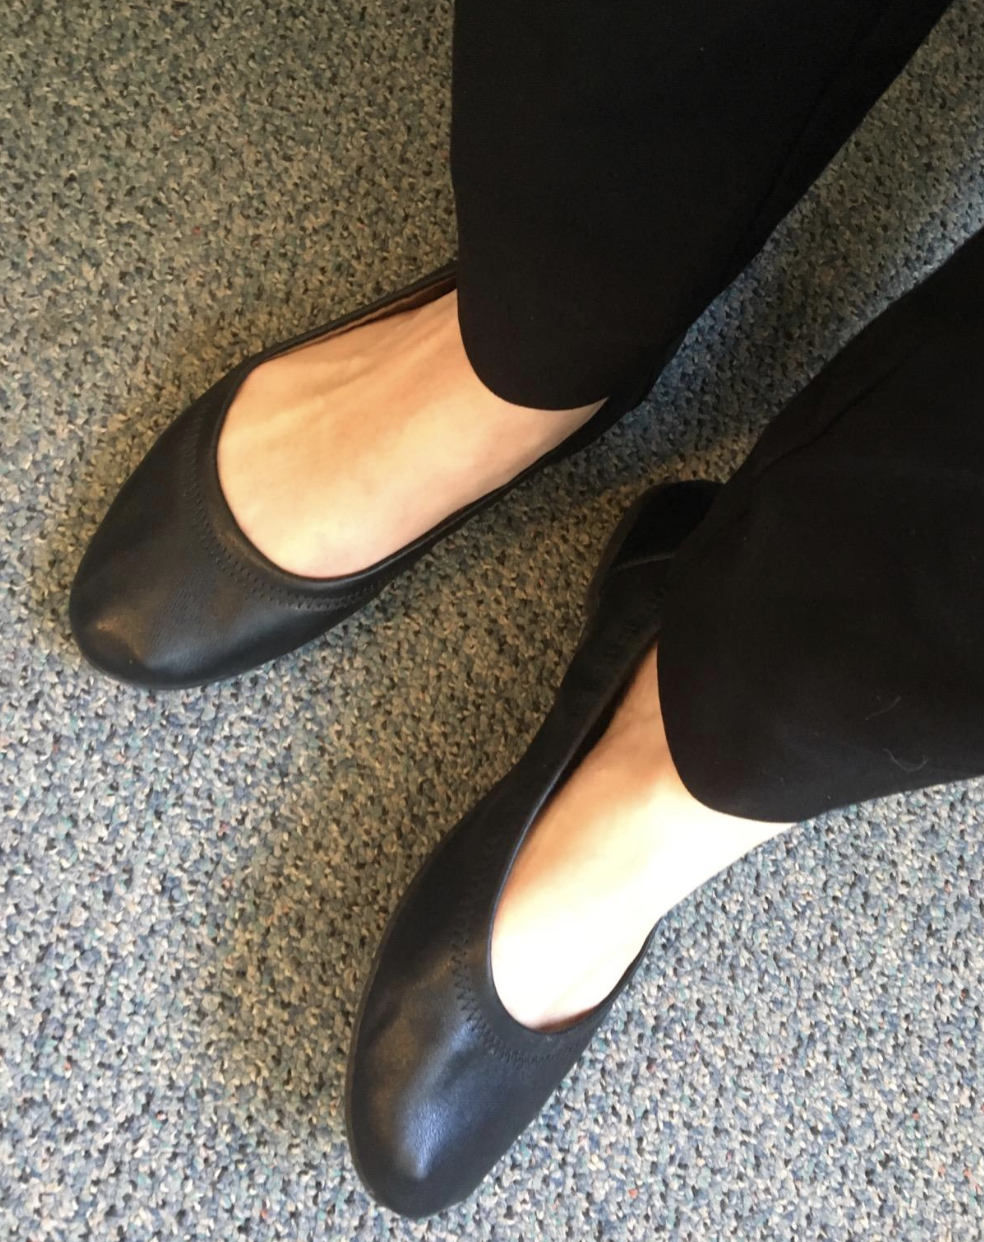 reviewer wearing the black flats